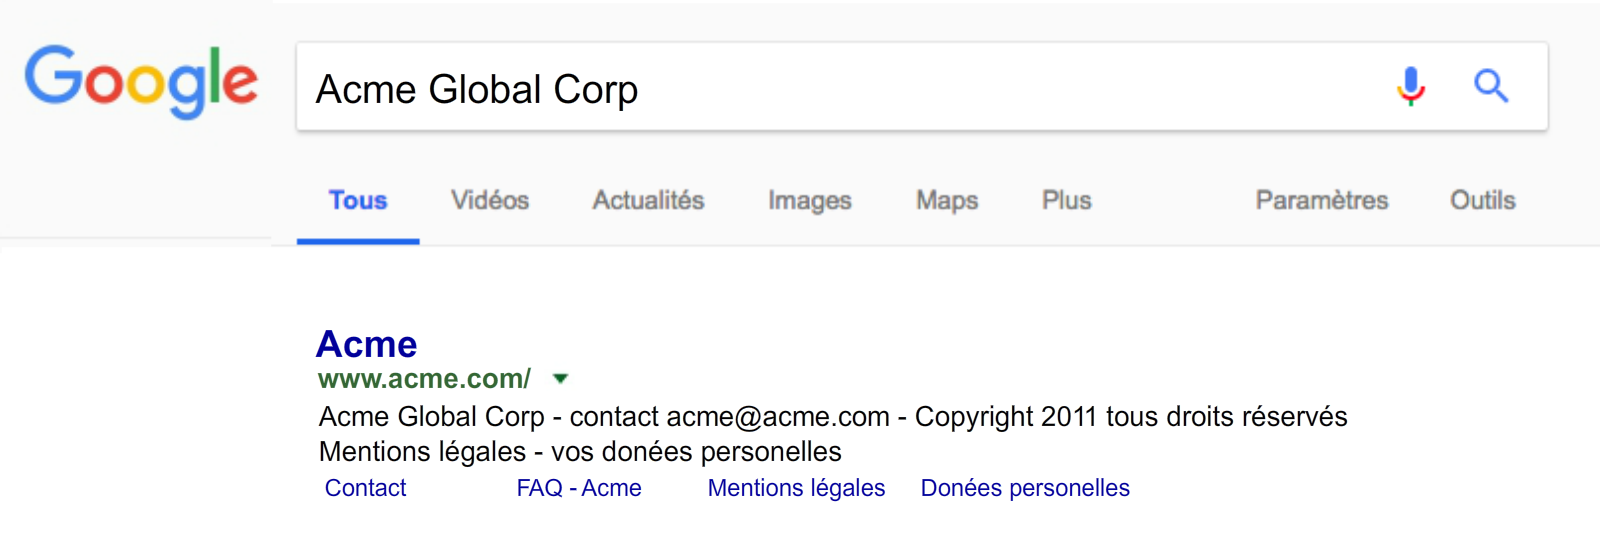 acme-homepage-snippet.png